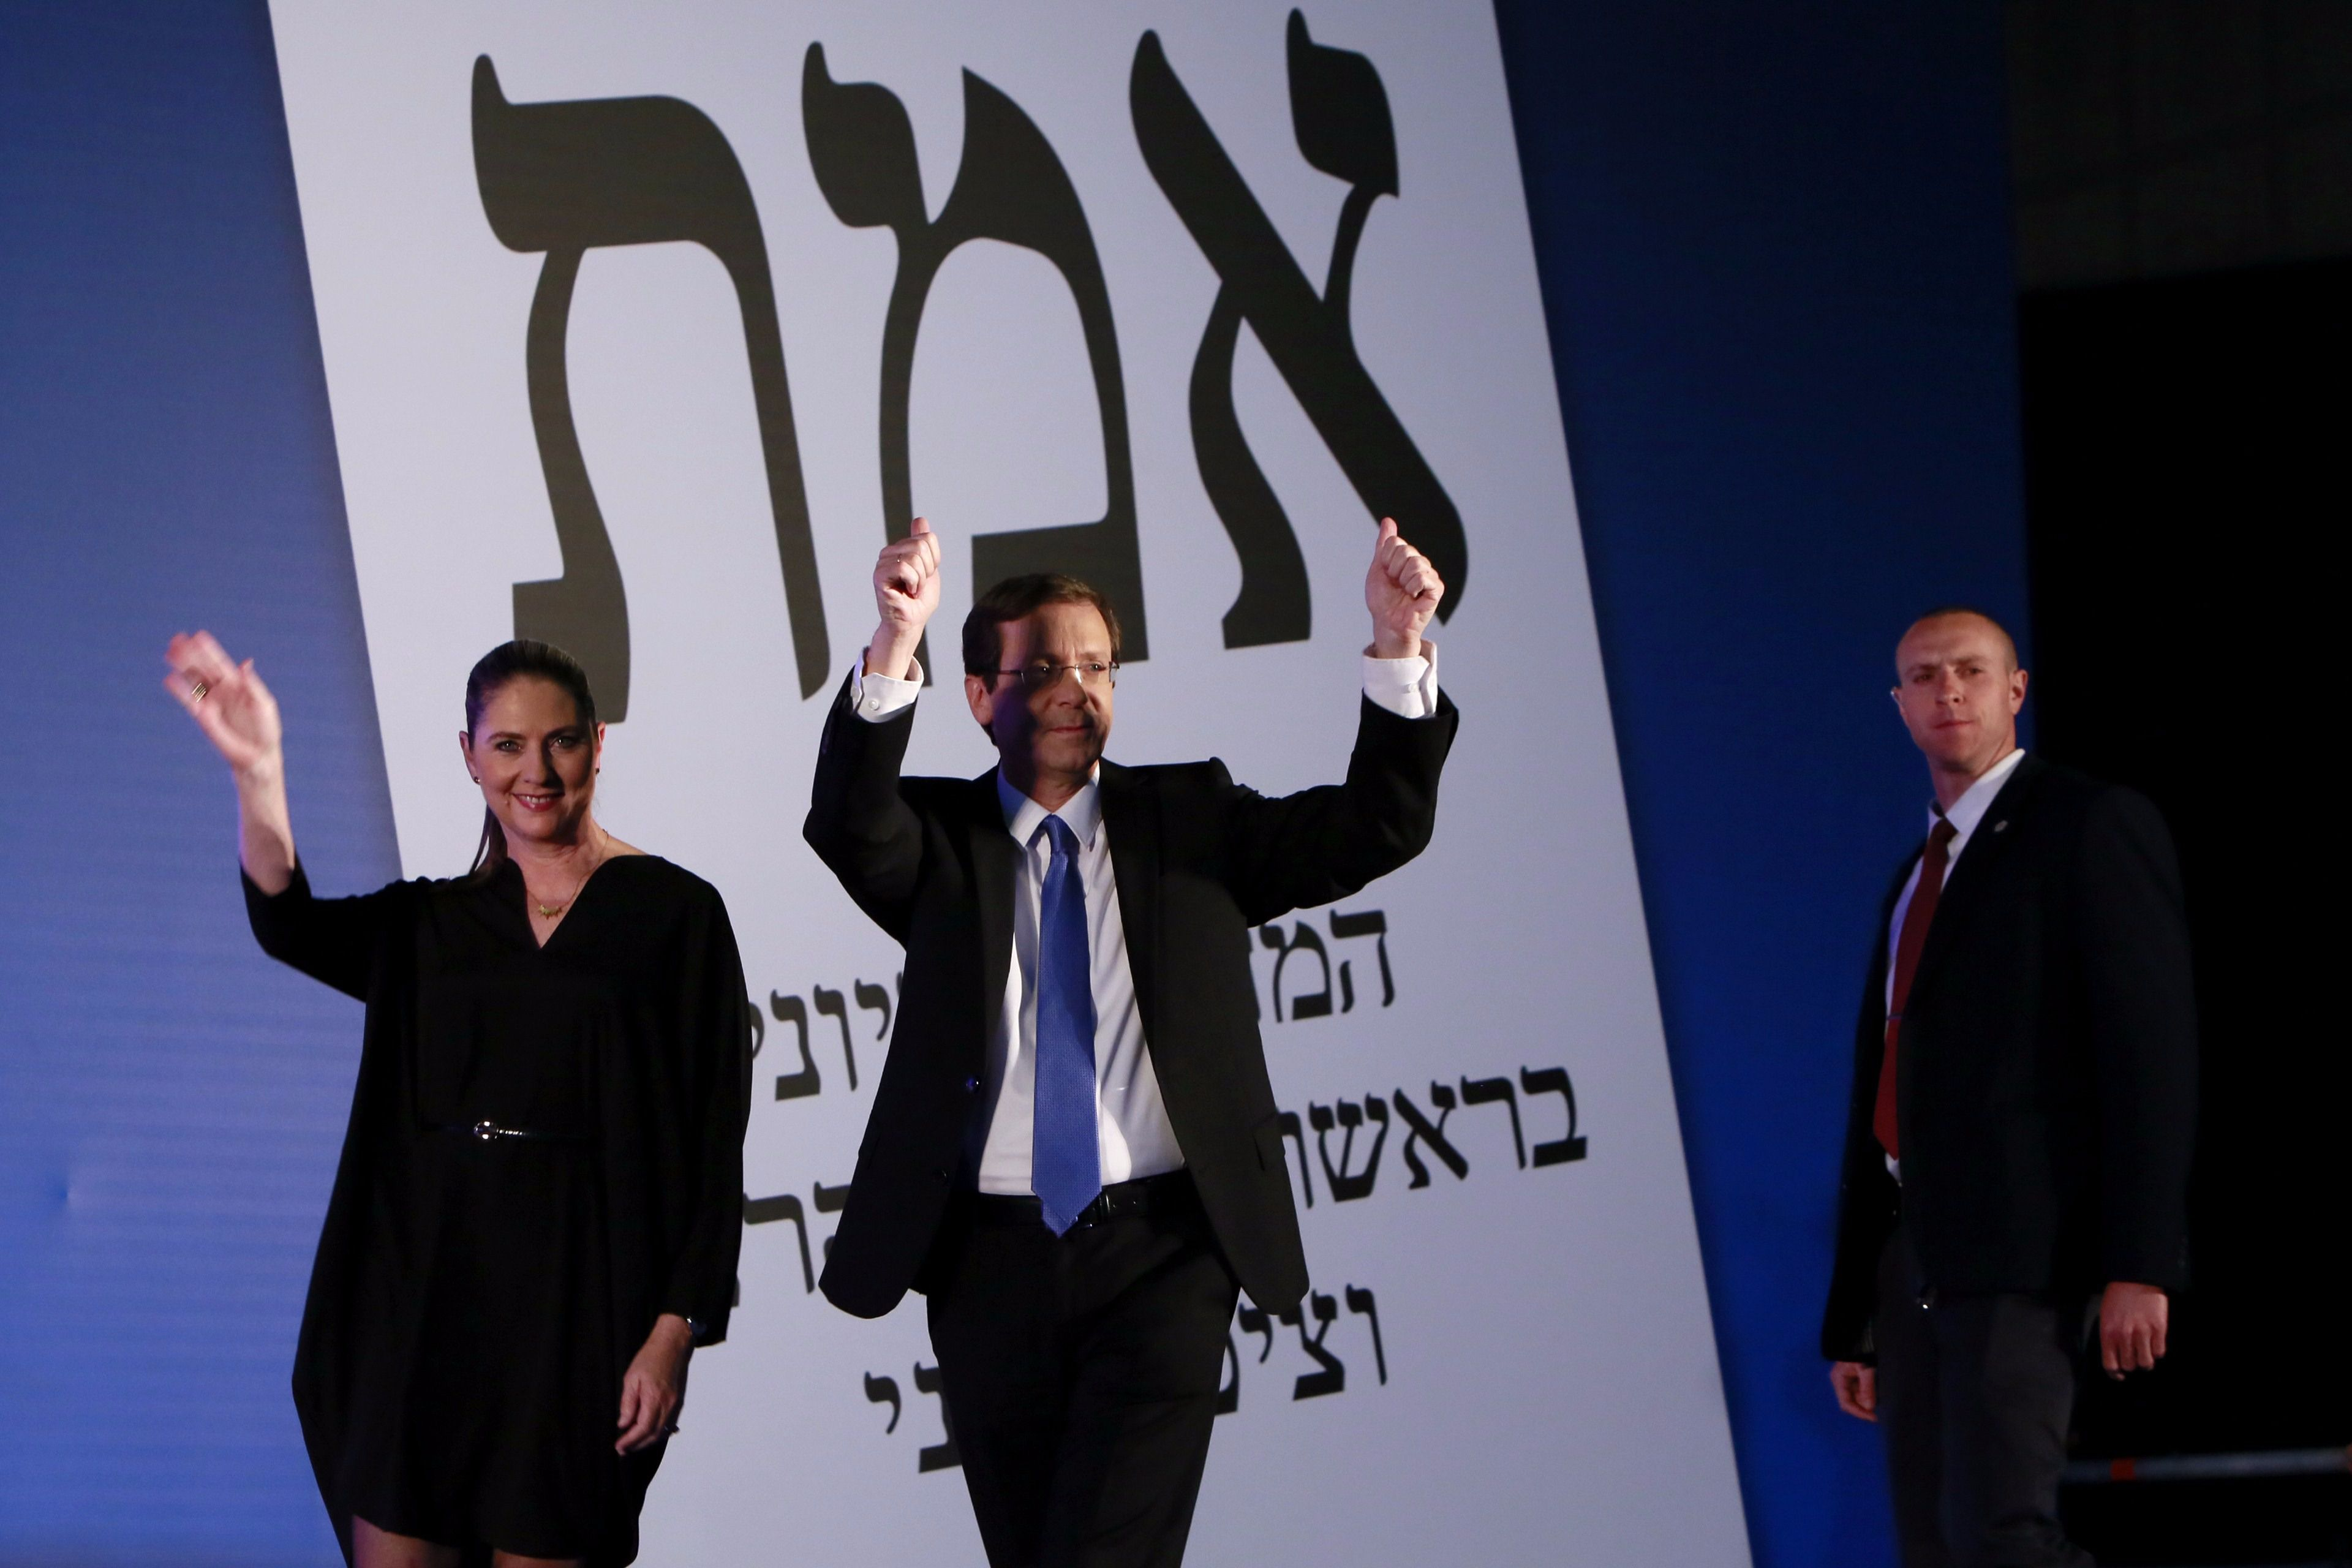 Israeli Labour Party leader Isaac Herzog arrives on stage with his wife Michal as he reacts to exit poll figures in Israel's parliamentary elections late on March 17, 2015 in the city of Tel Aviv.